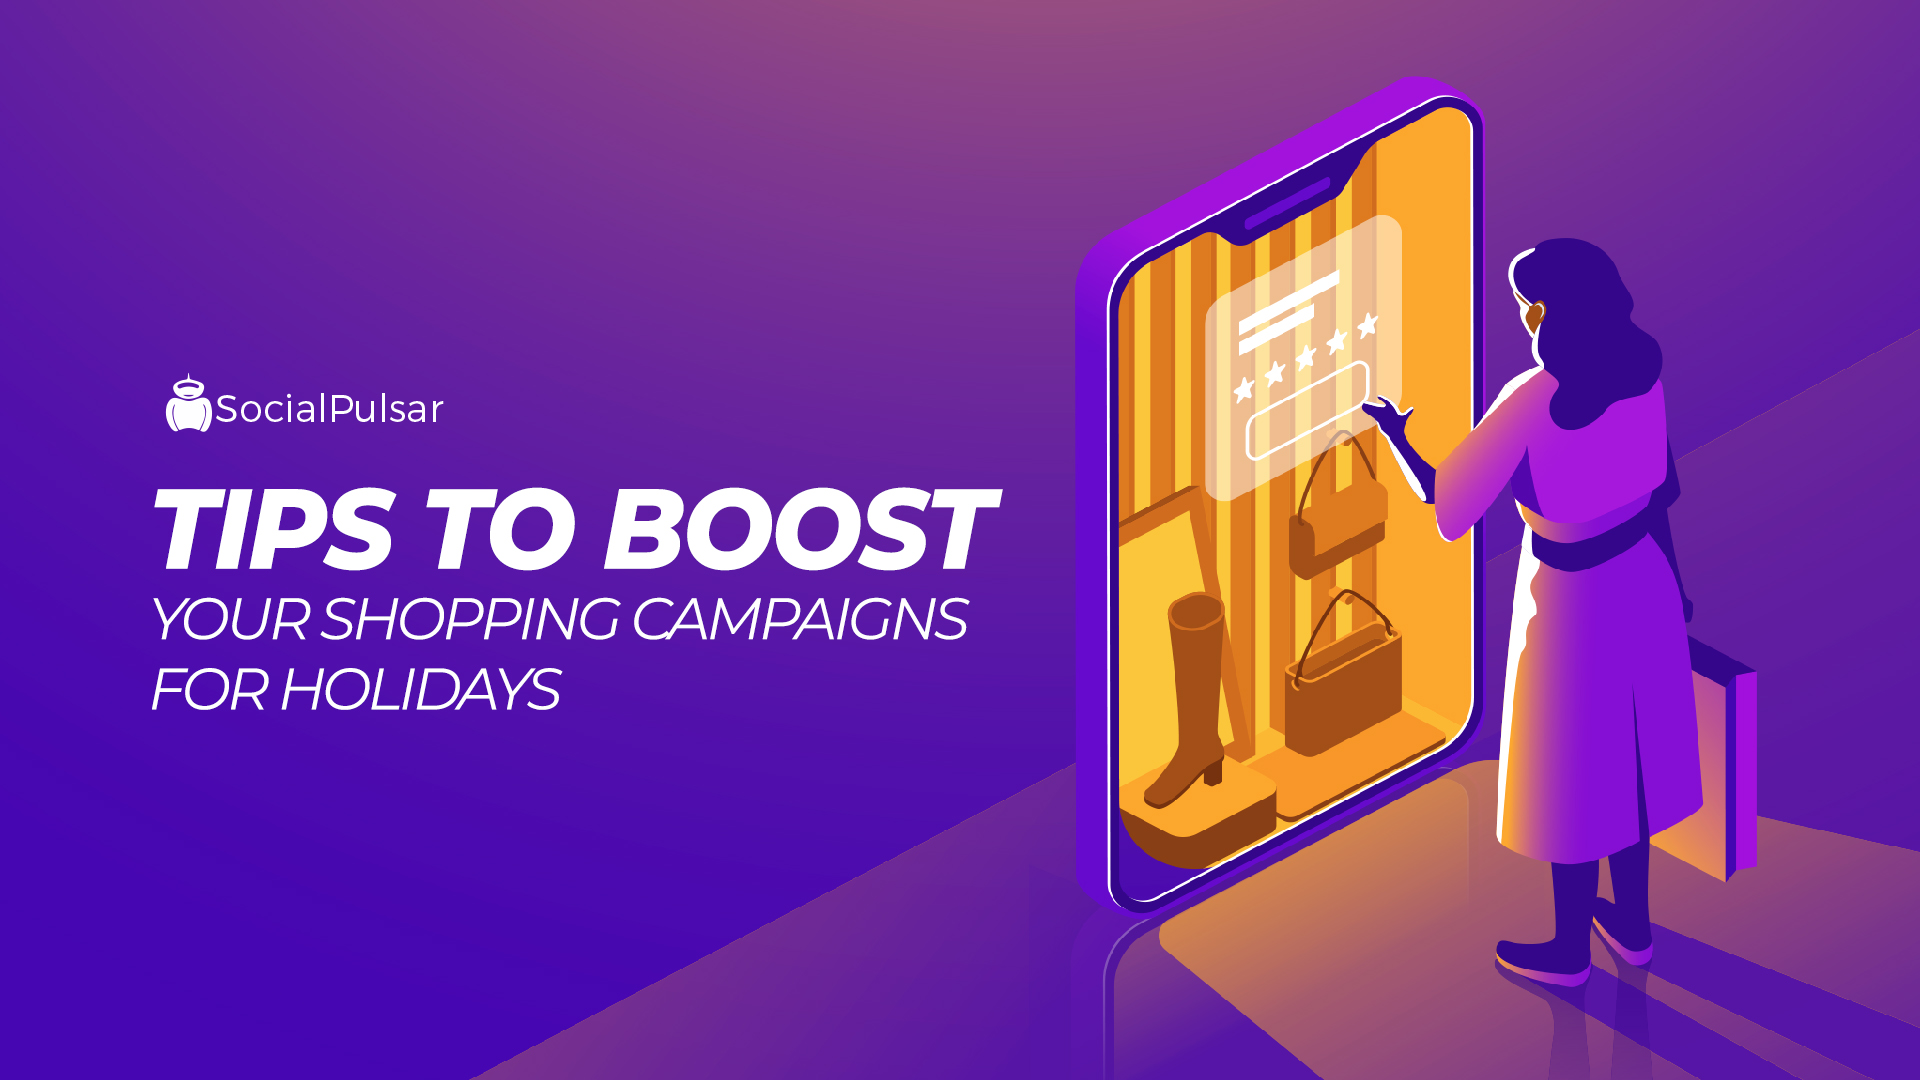 Tips to Boost Your Shopping Campaigns for Holidays